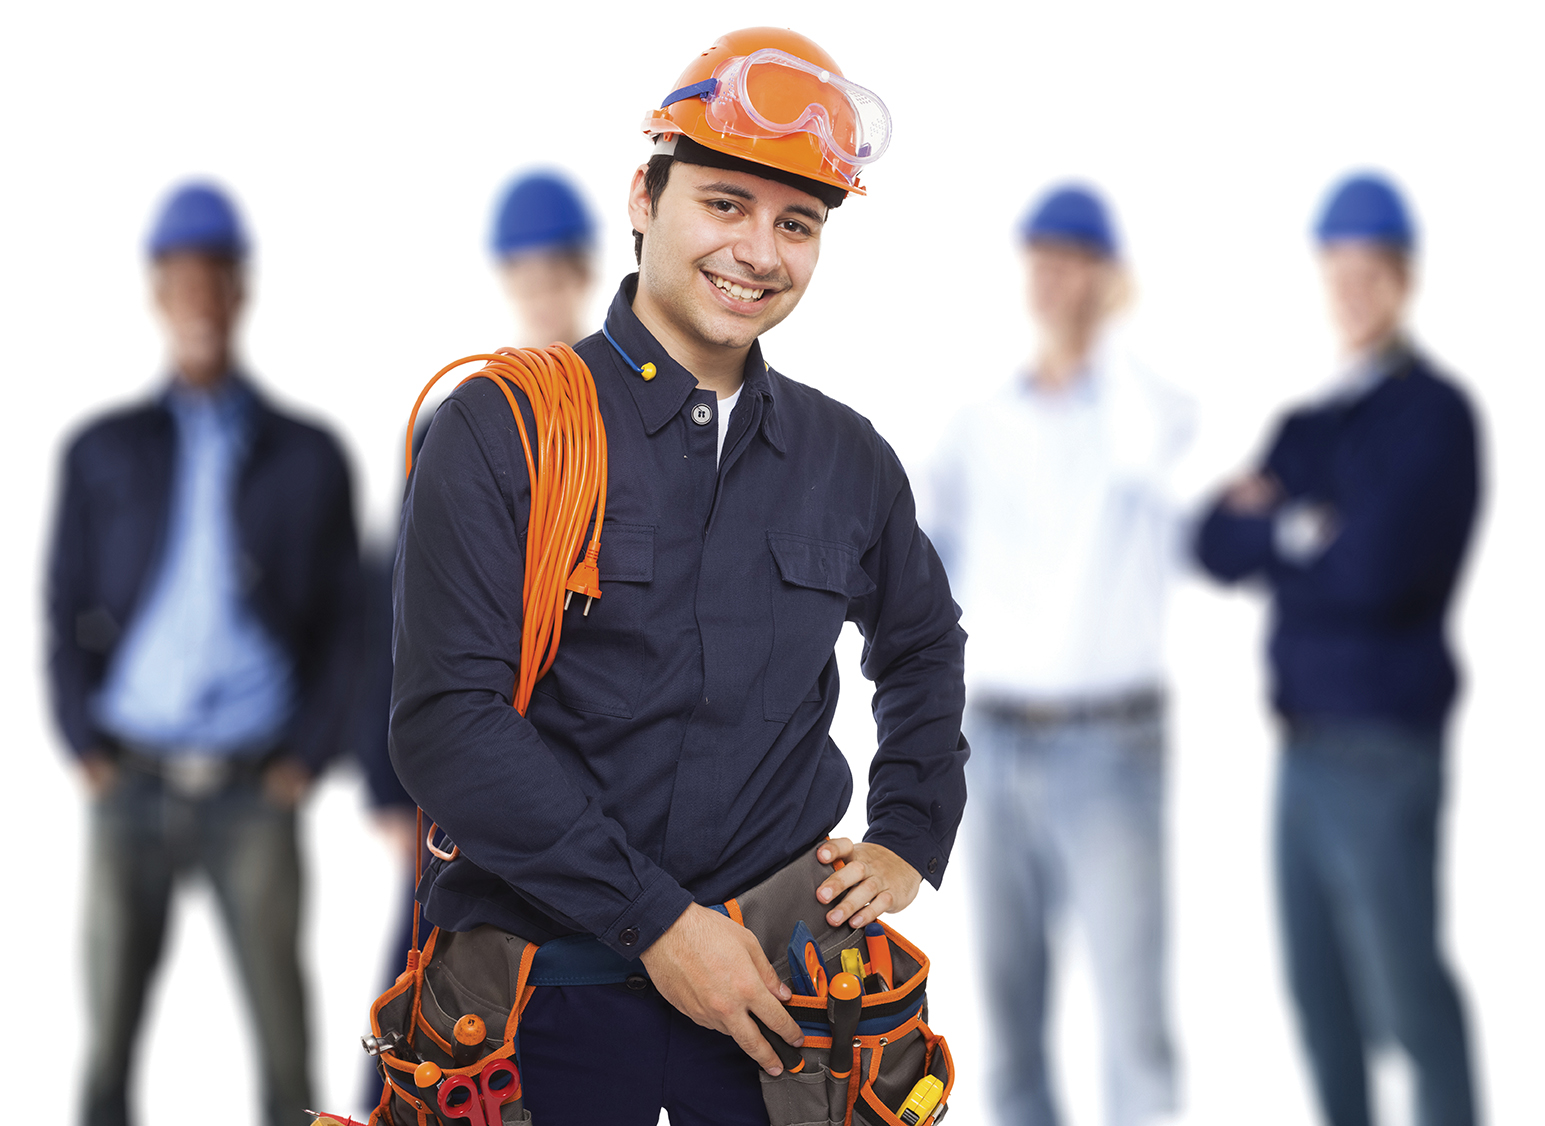 Electrical Workers And Contractors Team Up On New Smart. Heating And Cooling Huntsville Al. Hospitalist Jobs In Houston Data Ware House. Business Plan Assistance Google Ad Management. Fastest Way To Get Rid Of Back Acne. Top 25 Christian Colleges Ancient Chinese Art. Disney Product Development Print Plastic Bag. Quest National Services Jboss Server Download. Clothing Styles For Girls Cost To Form An Llc